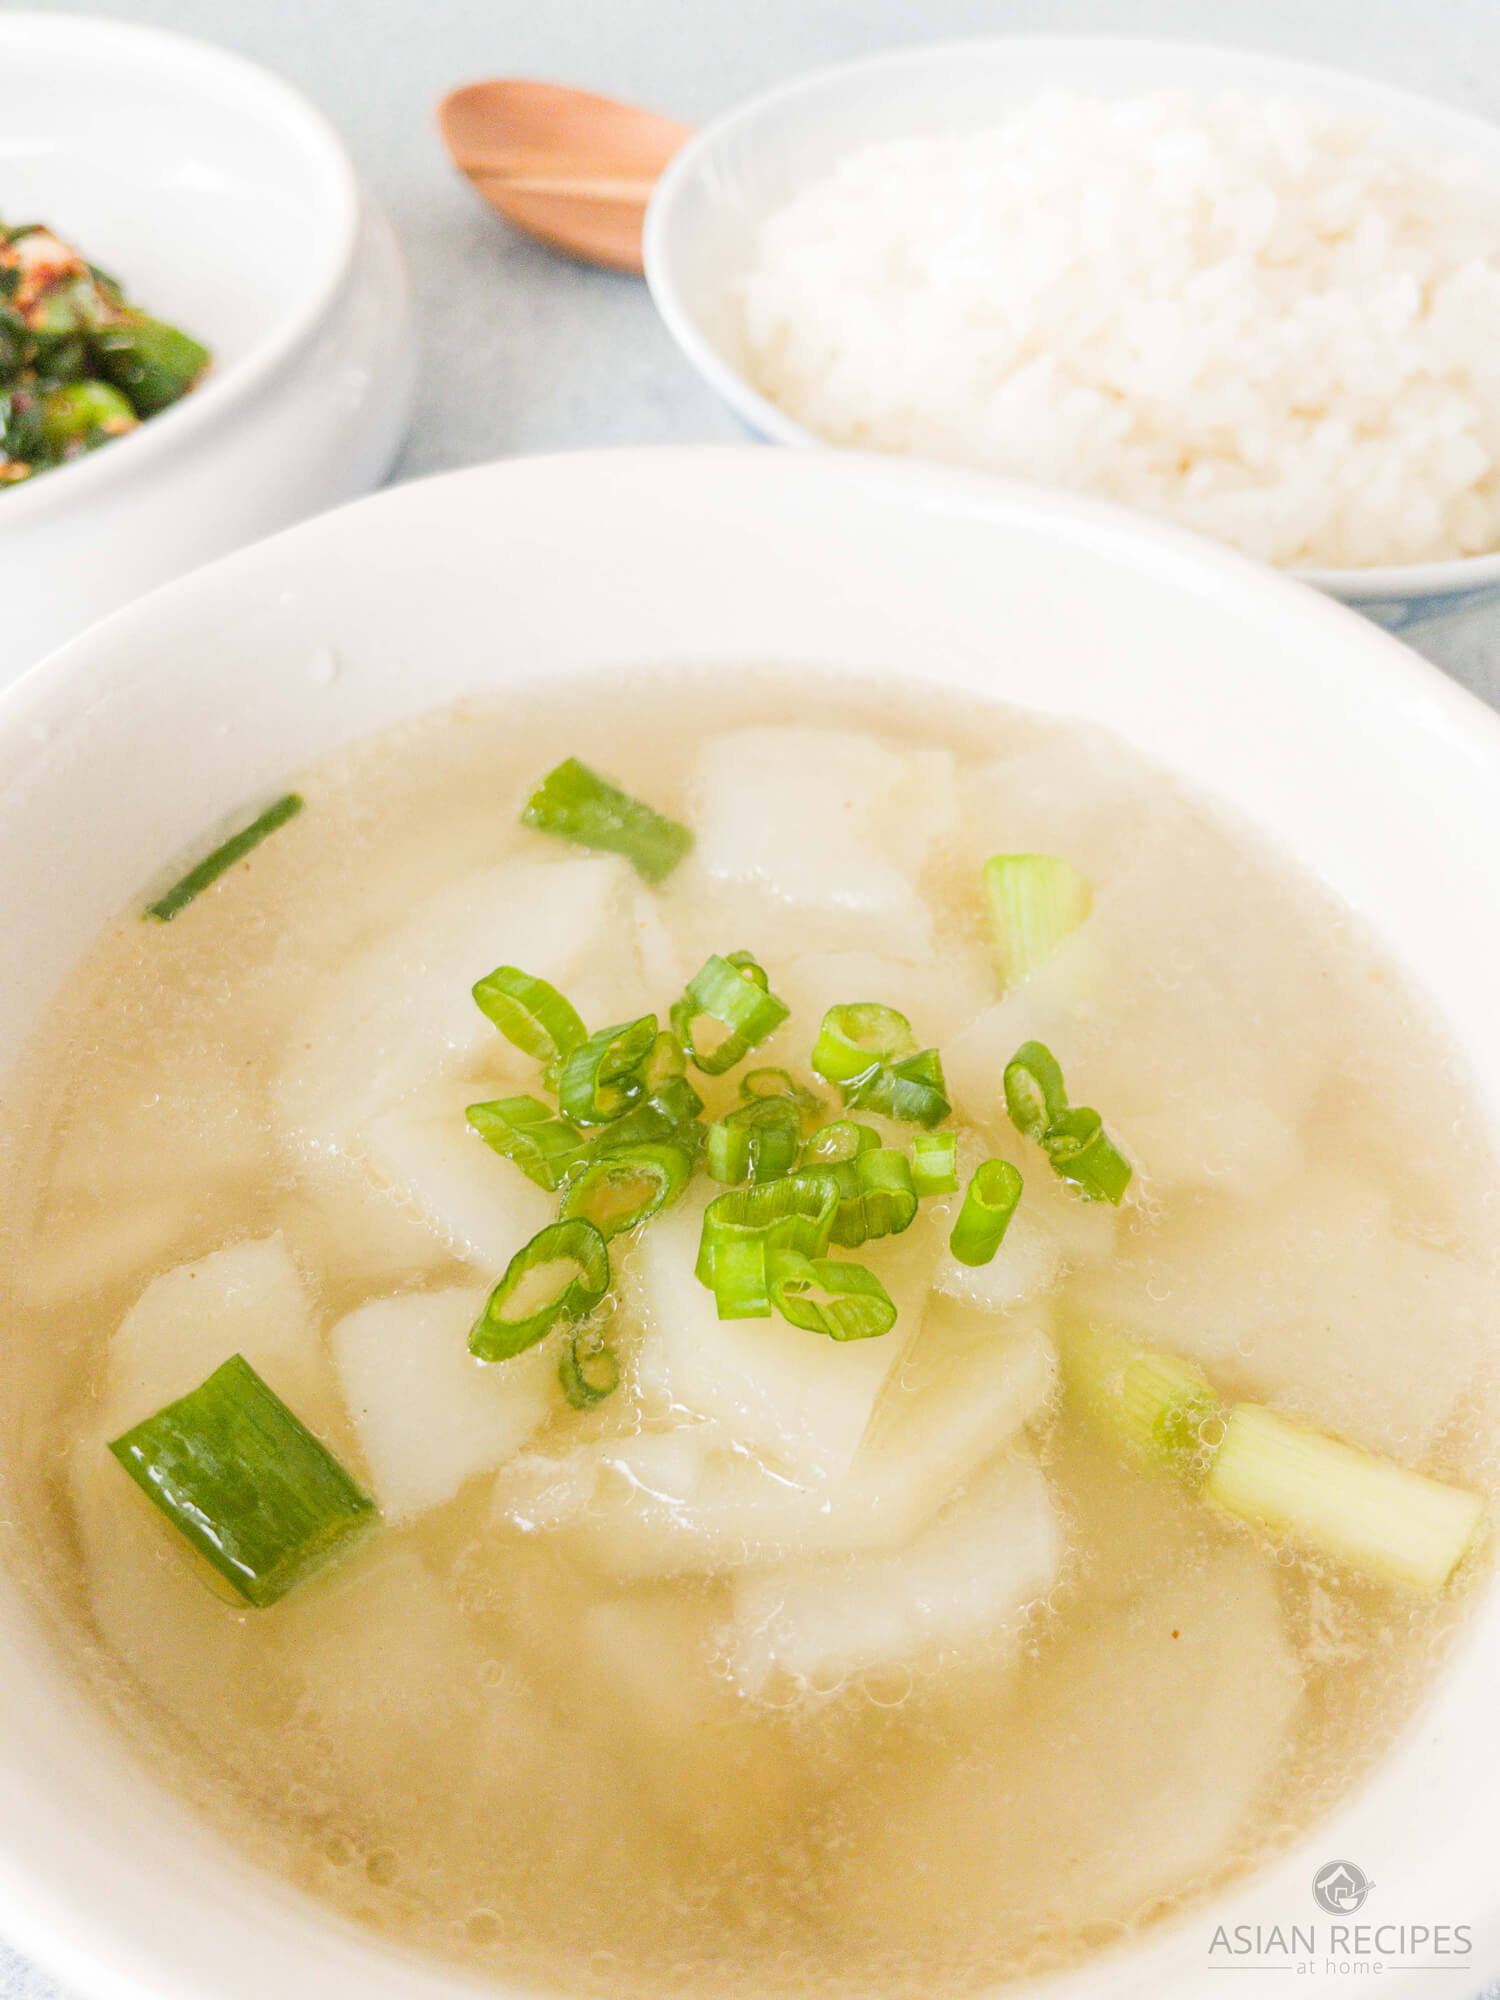 This is a super easy potato soup that is made with simple Asian-style seasonings to create a clear broth.